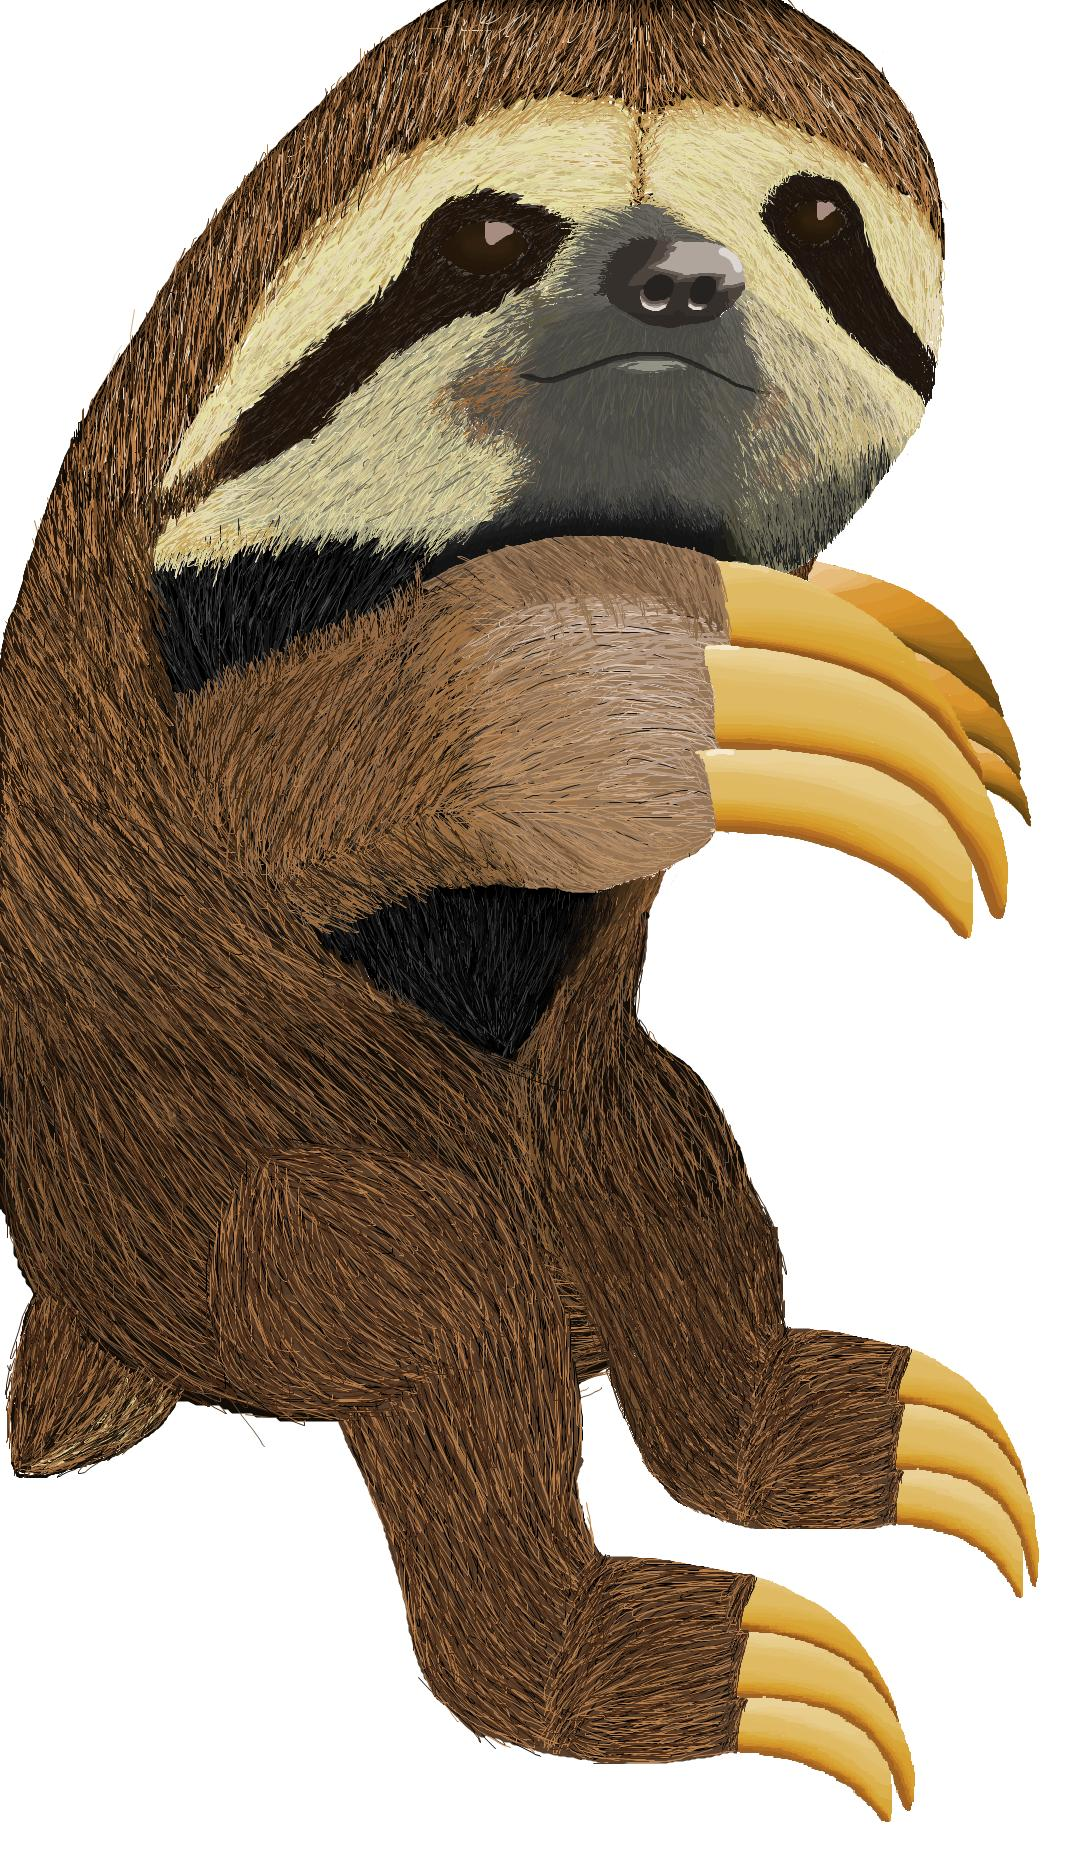 MS Paint sloth